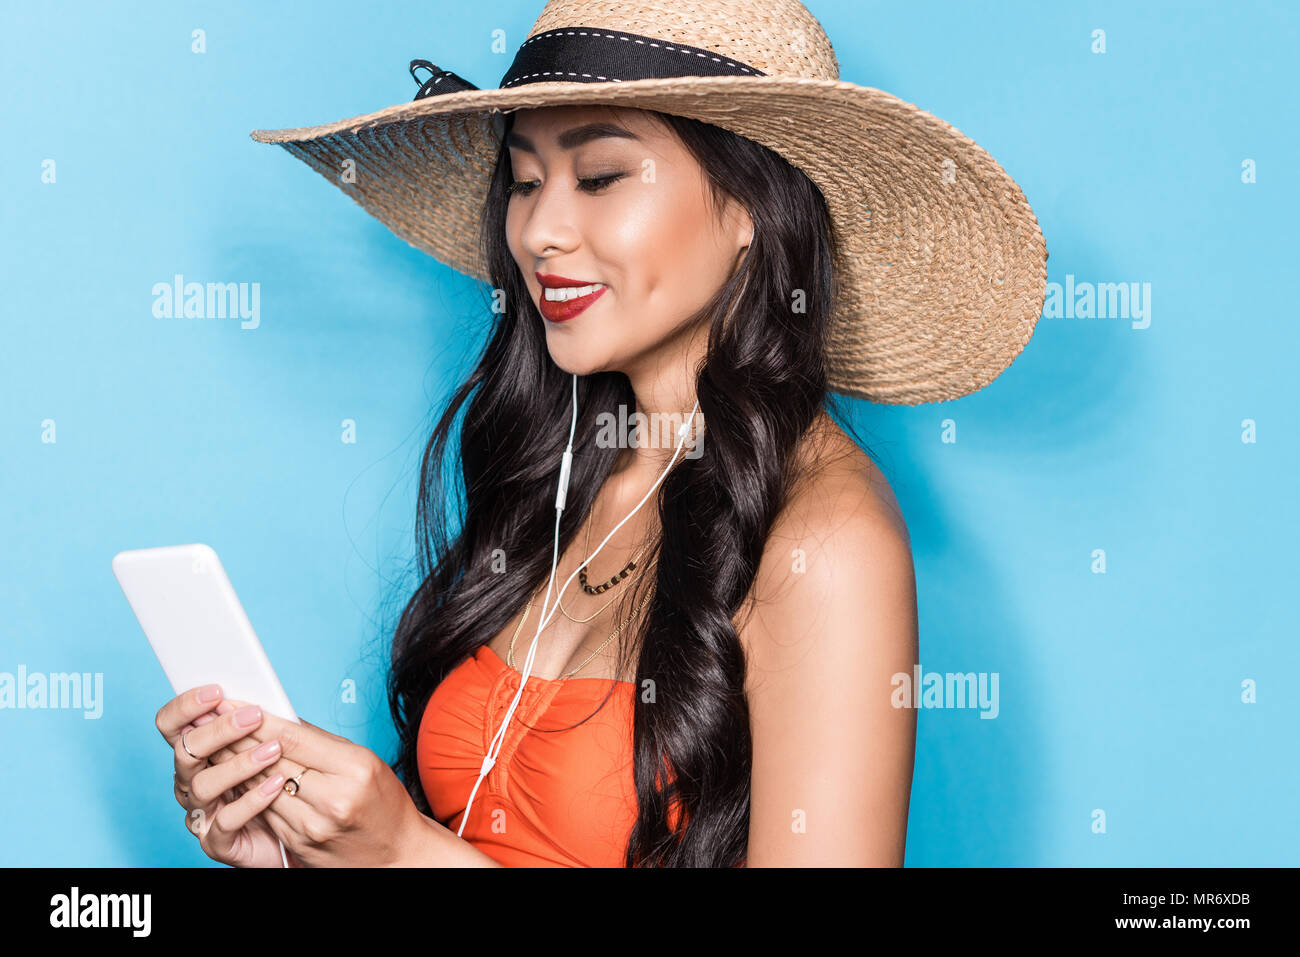 b1709e69bc beautiful asian woman in beach attire, listening to music in earbuds and  looking at smartphone